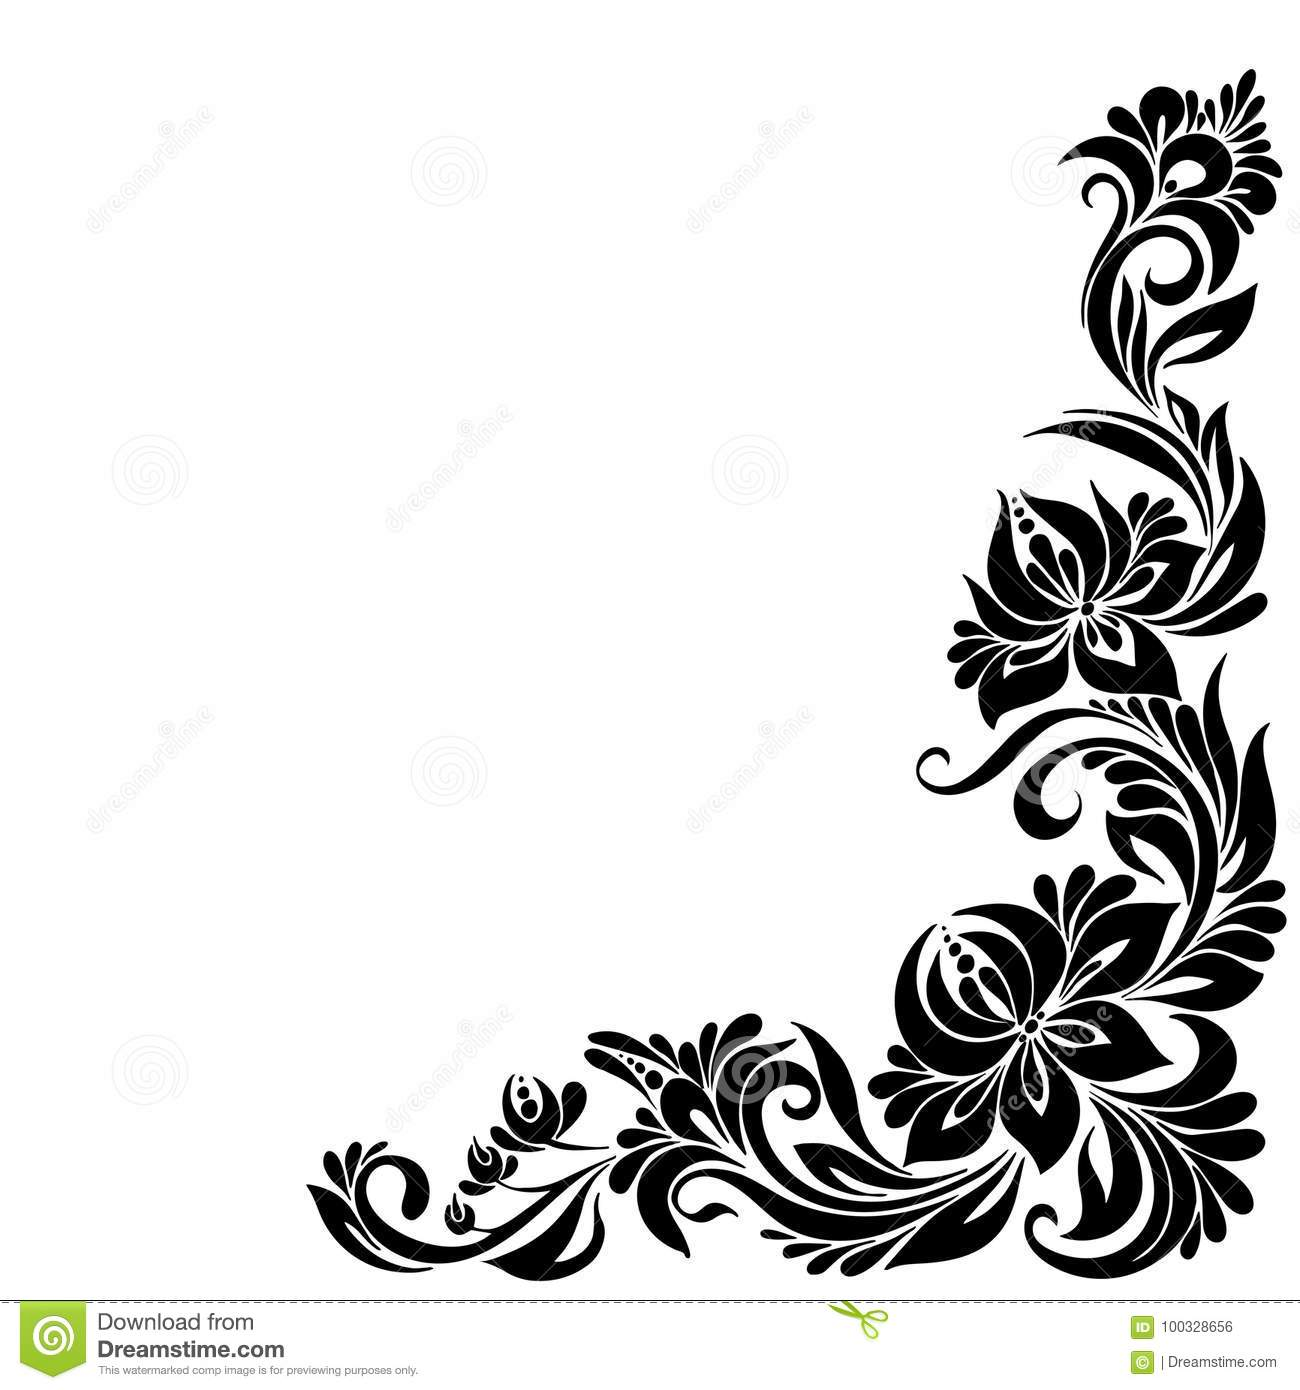 Decorative Corner Frame Stock Vector Illustration Of Illustration